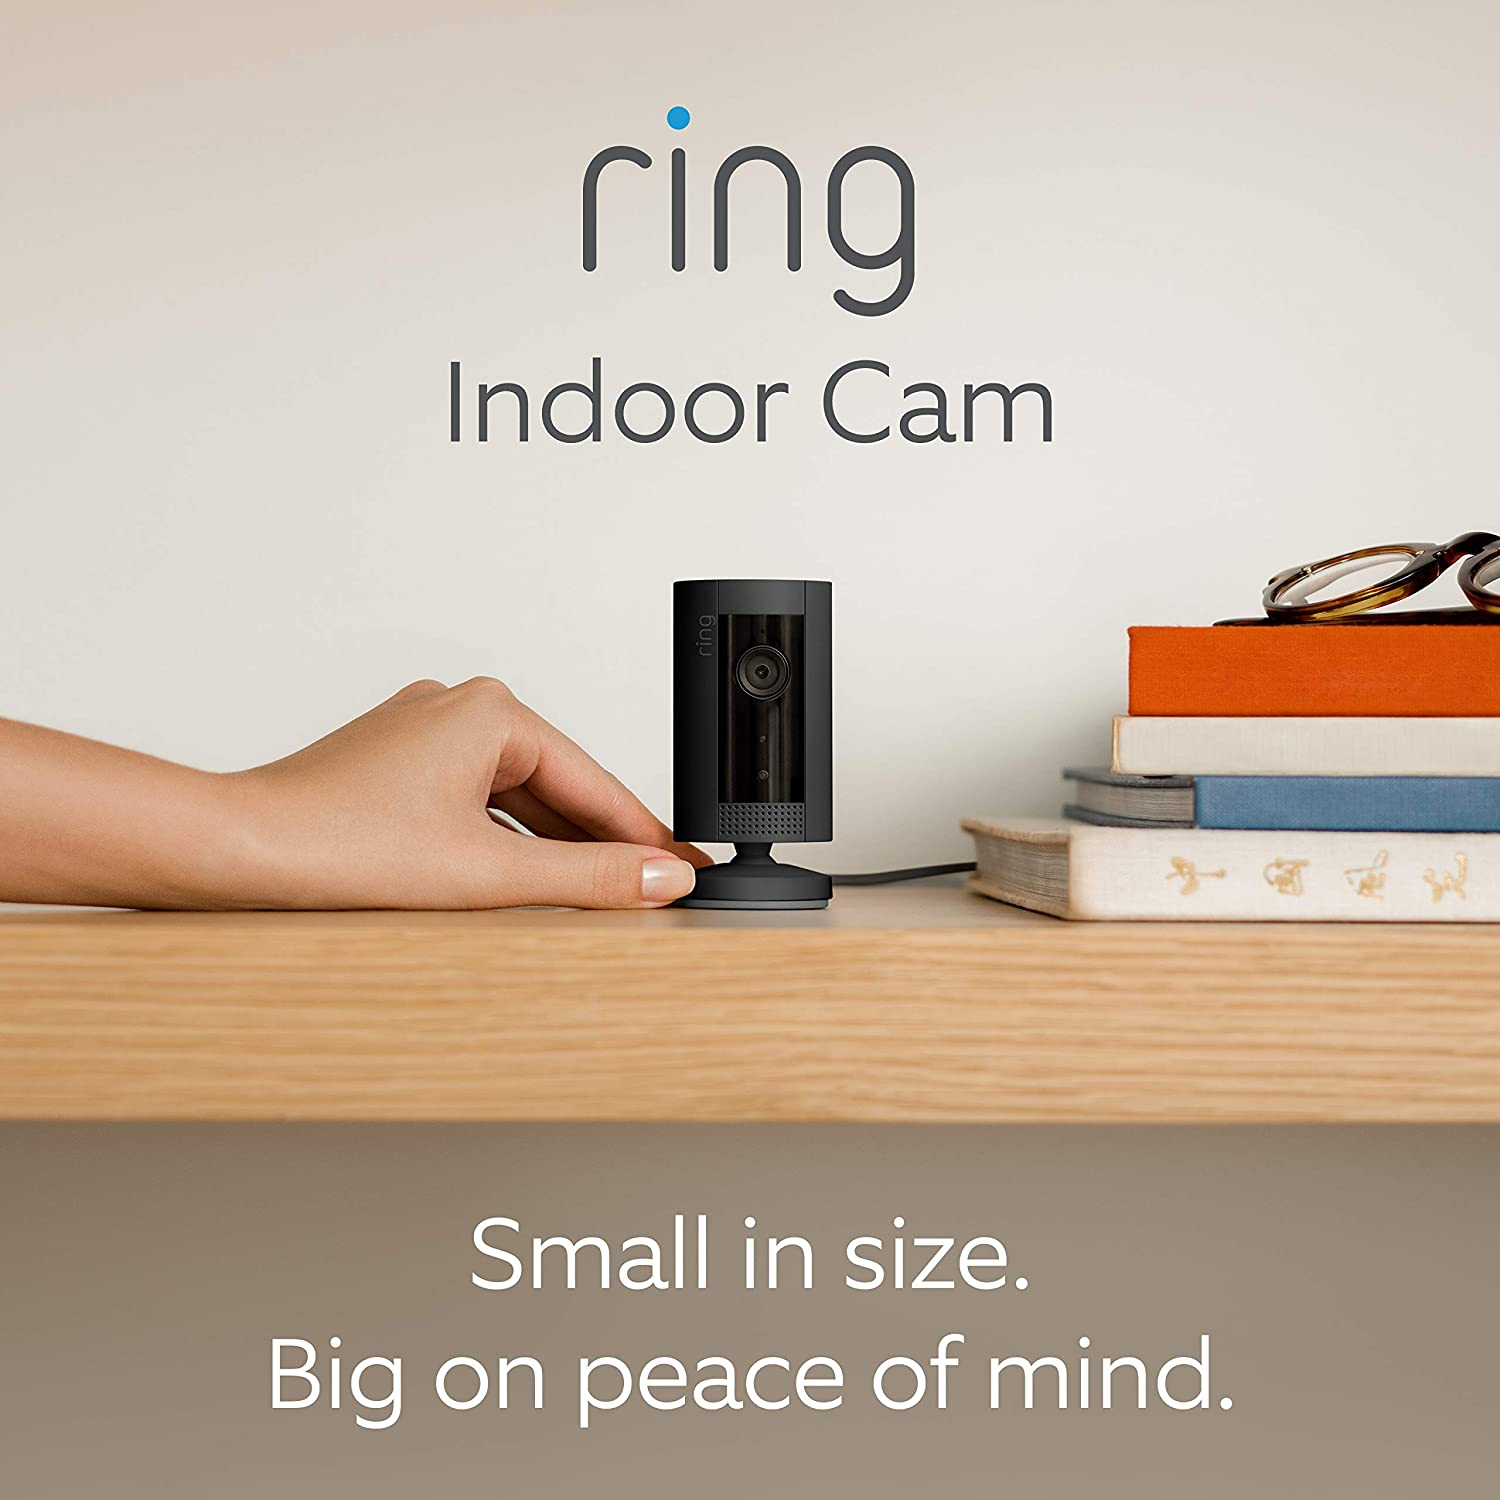 Compact Plug-In HD security camera with Two-Way Talk Works with Alexa With 30-day free trial of Ring Protect Plan Black Introducing Ring Indoor Cam